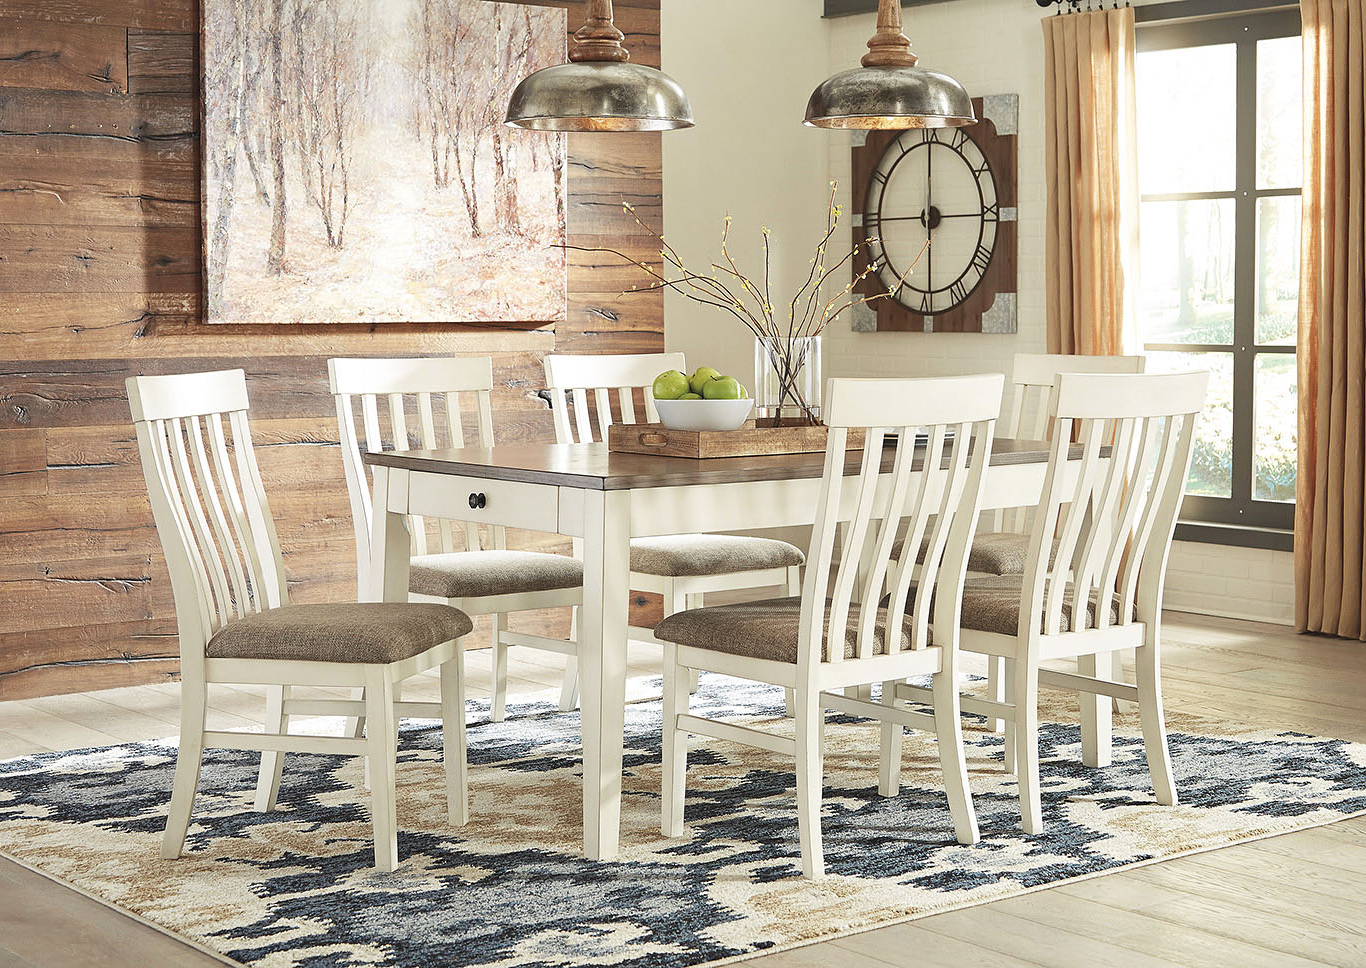 Newest Coaster Contemporary 6-Seating Rectangular Casual Dining Tables inside Wine Country Furniture Bardilyn Dining Table W/6 Side Chairs